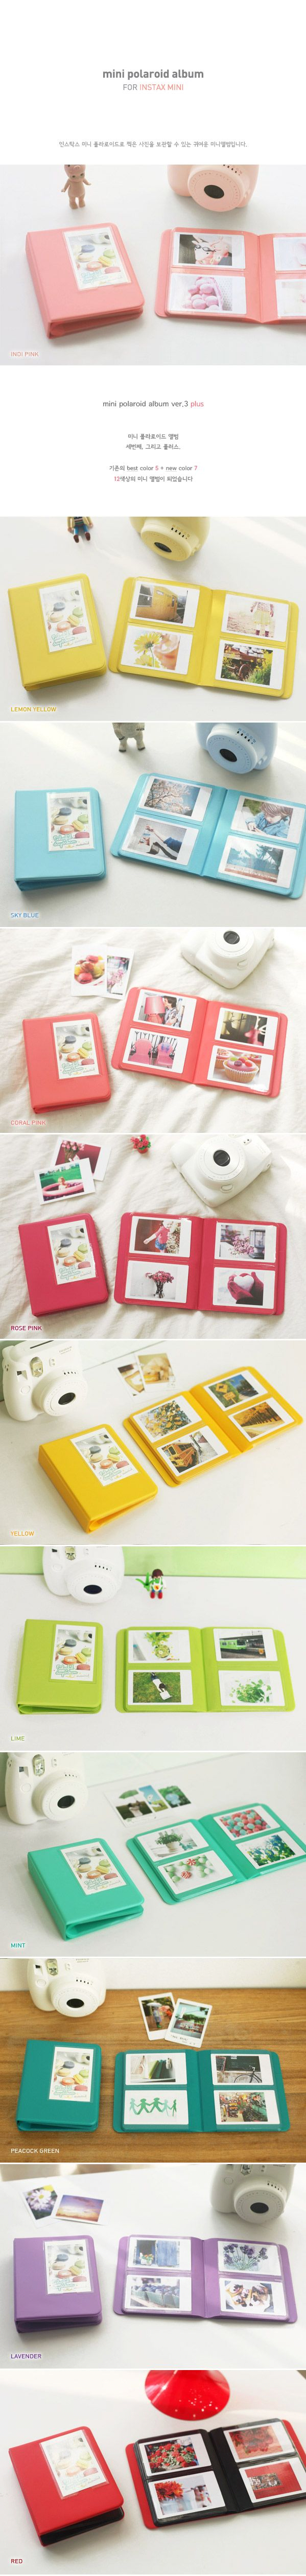 New Polaroid Photo Album for Fuji Instax Mini Ver 3 Plus Indi Pink | eBay $8.99